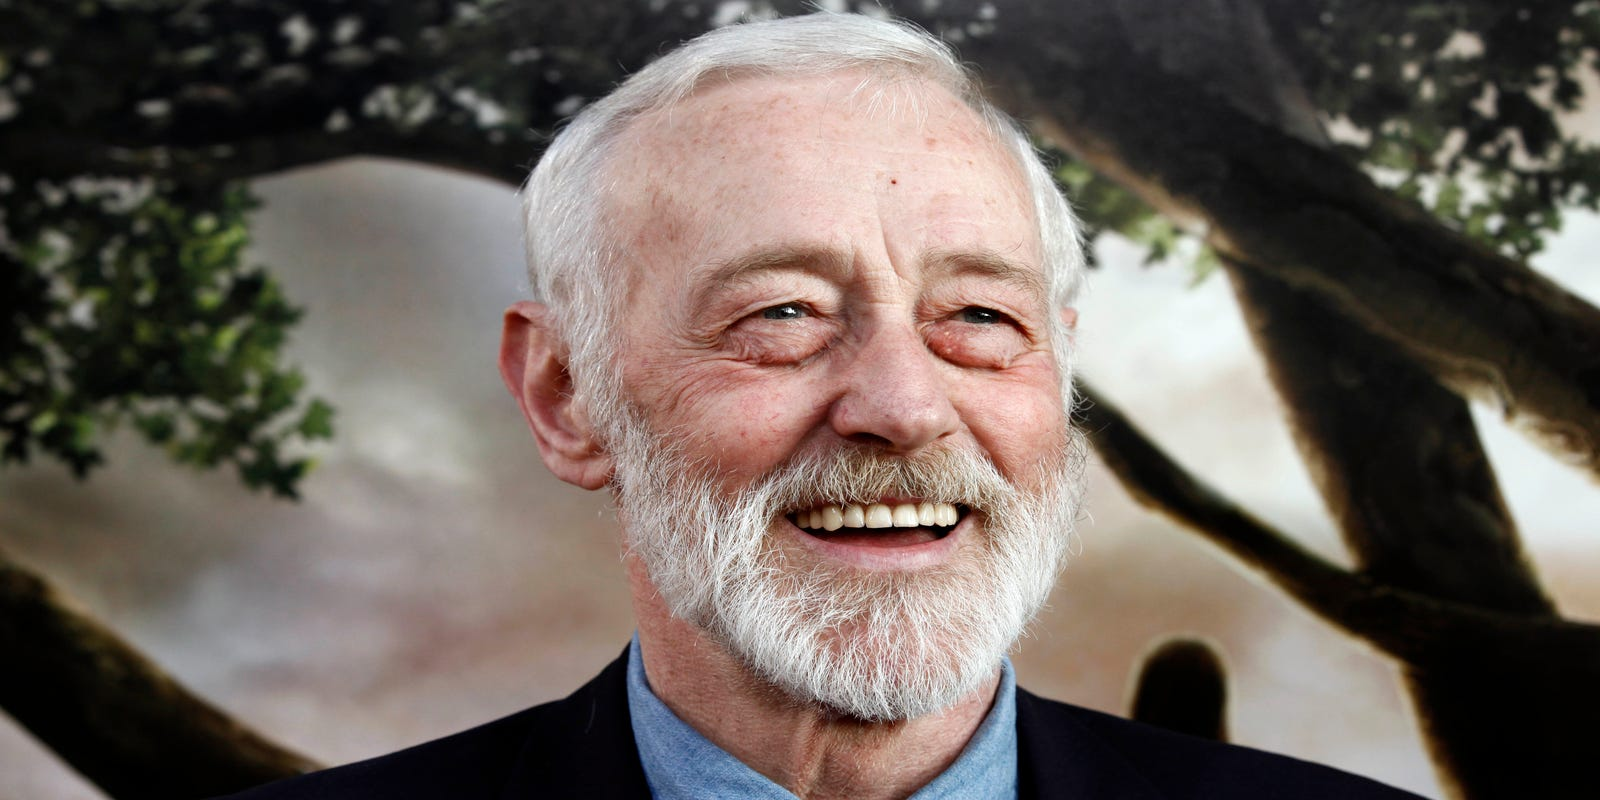 Rip John Mahoney Frasier And Say Anything Father Dies At 77 Doctor Dapper Hair Mud Gold 100 Gr